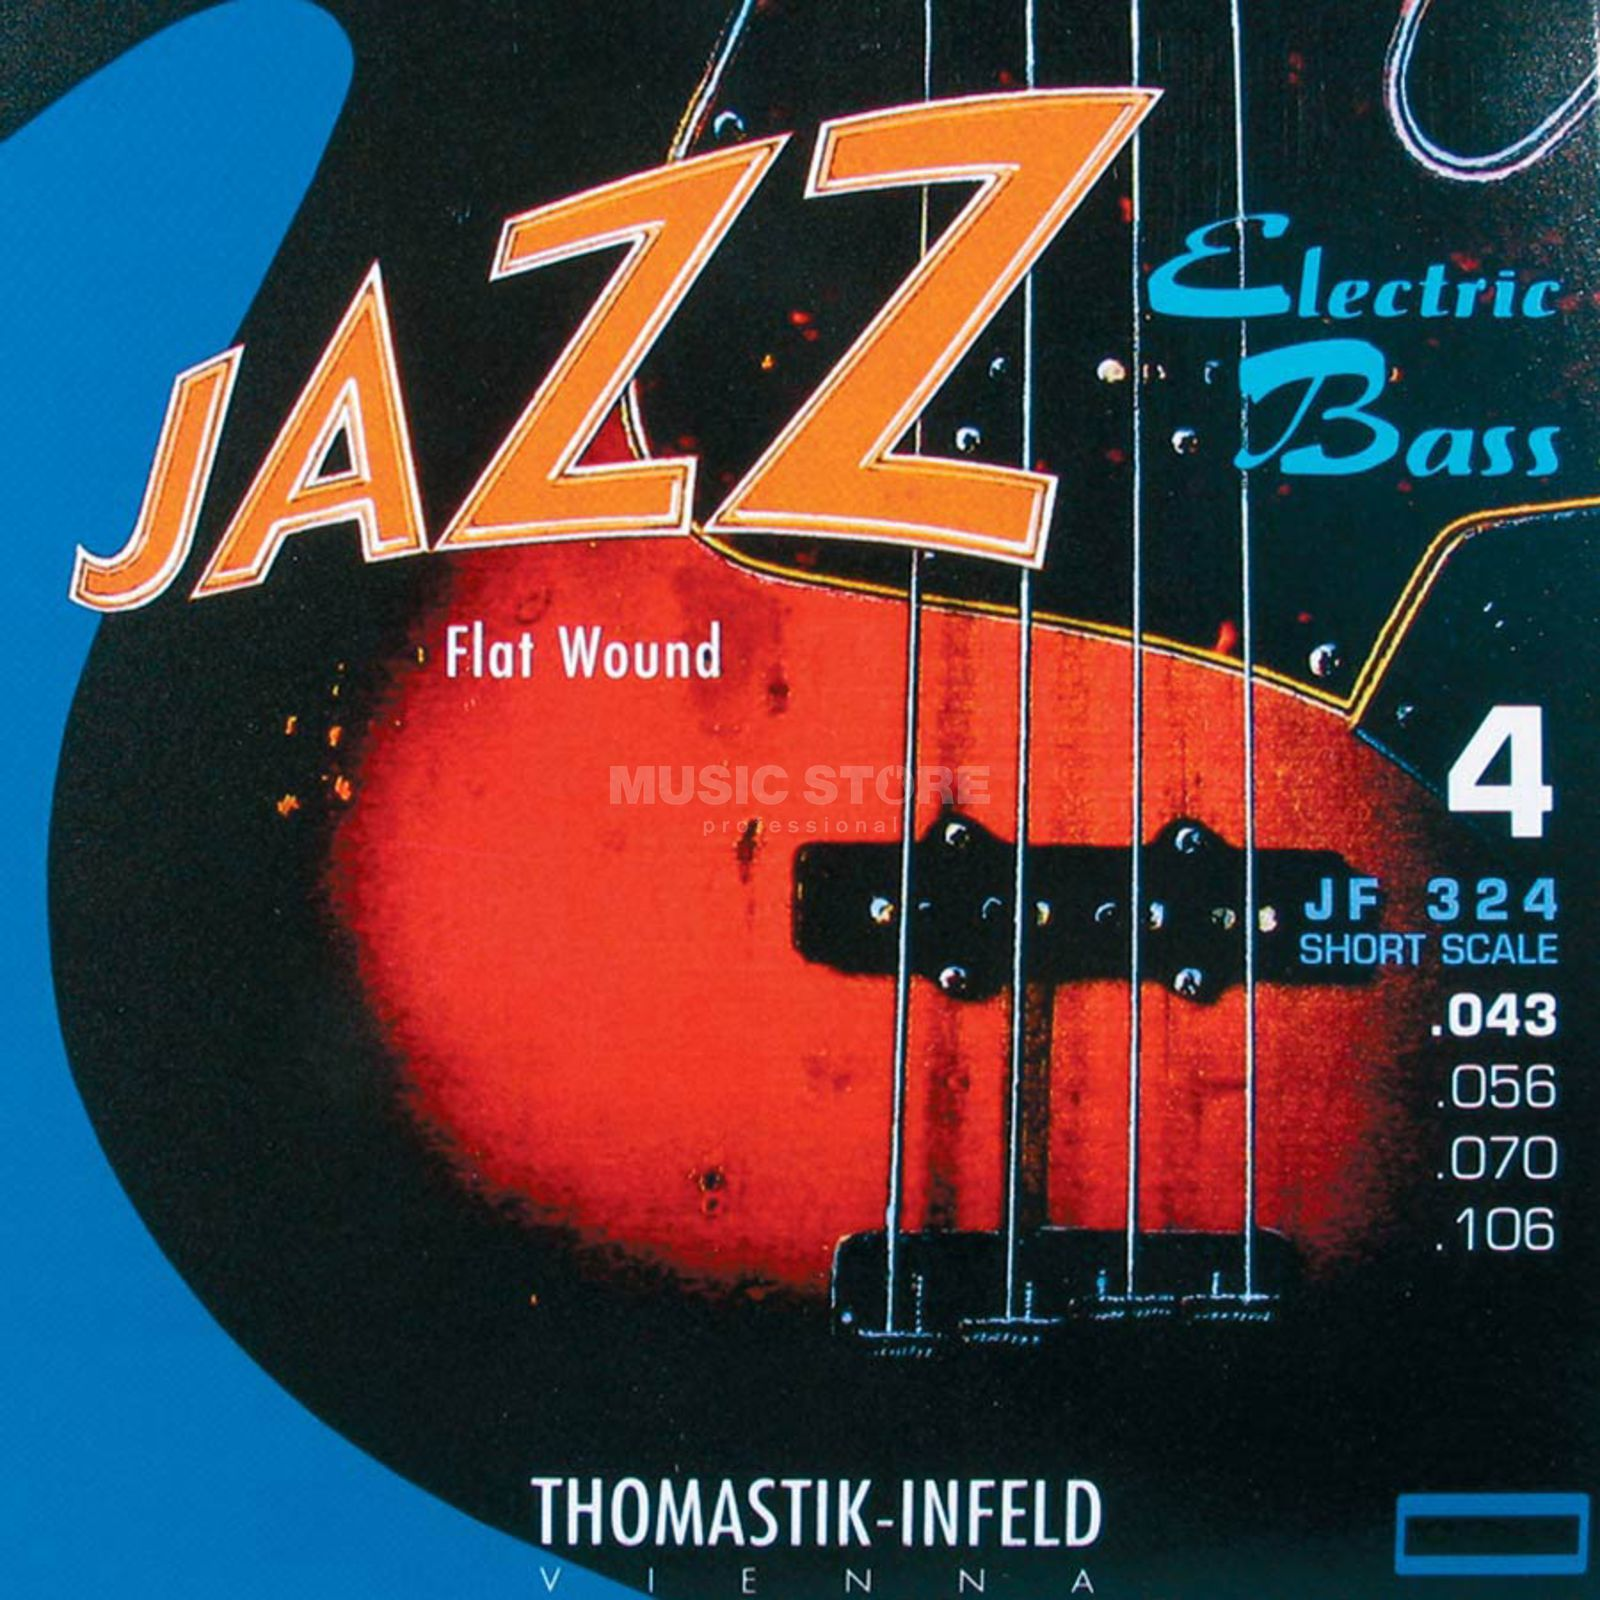 Thomastik 4 Bass Strings JF 324 43-106 Nickel Flat Wound, Short Scale Produktbillede